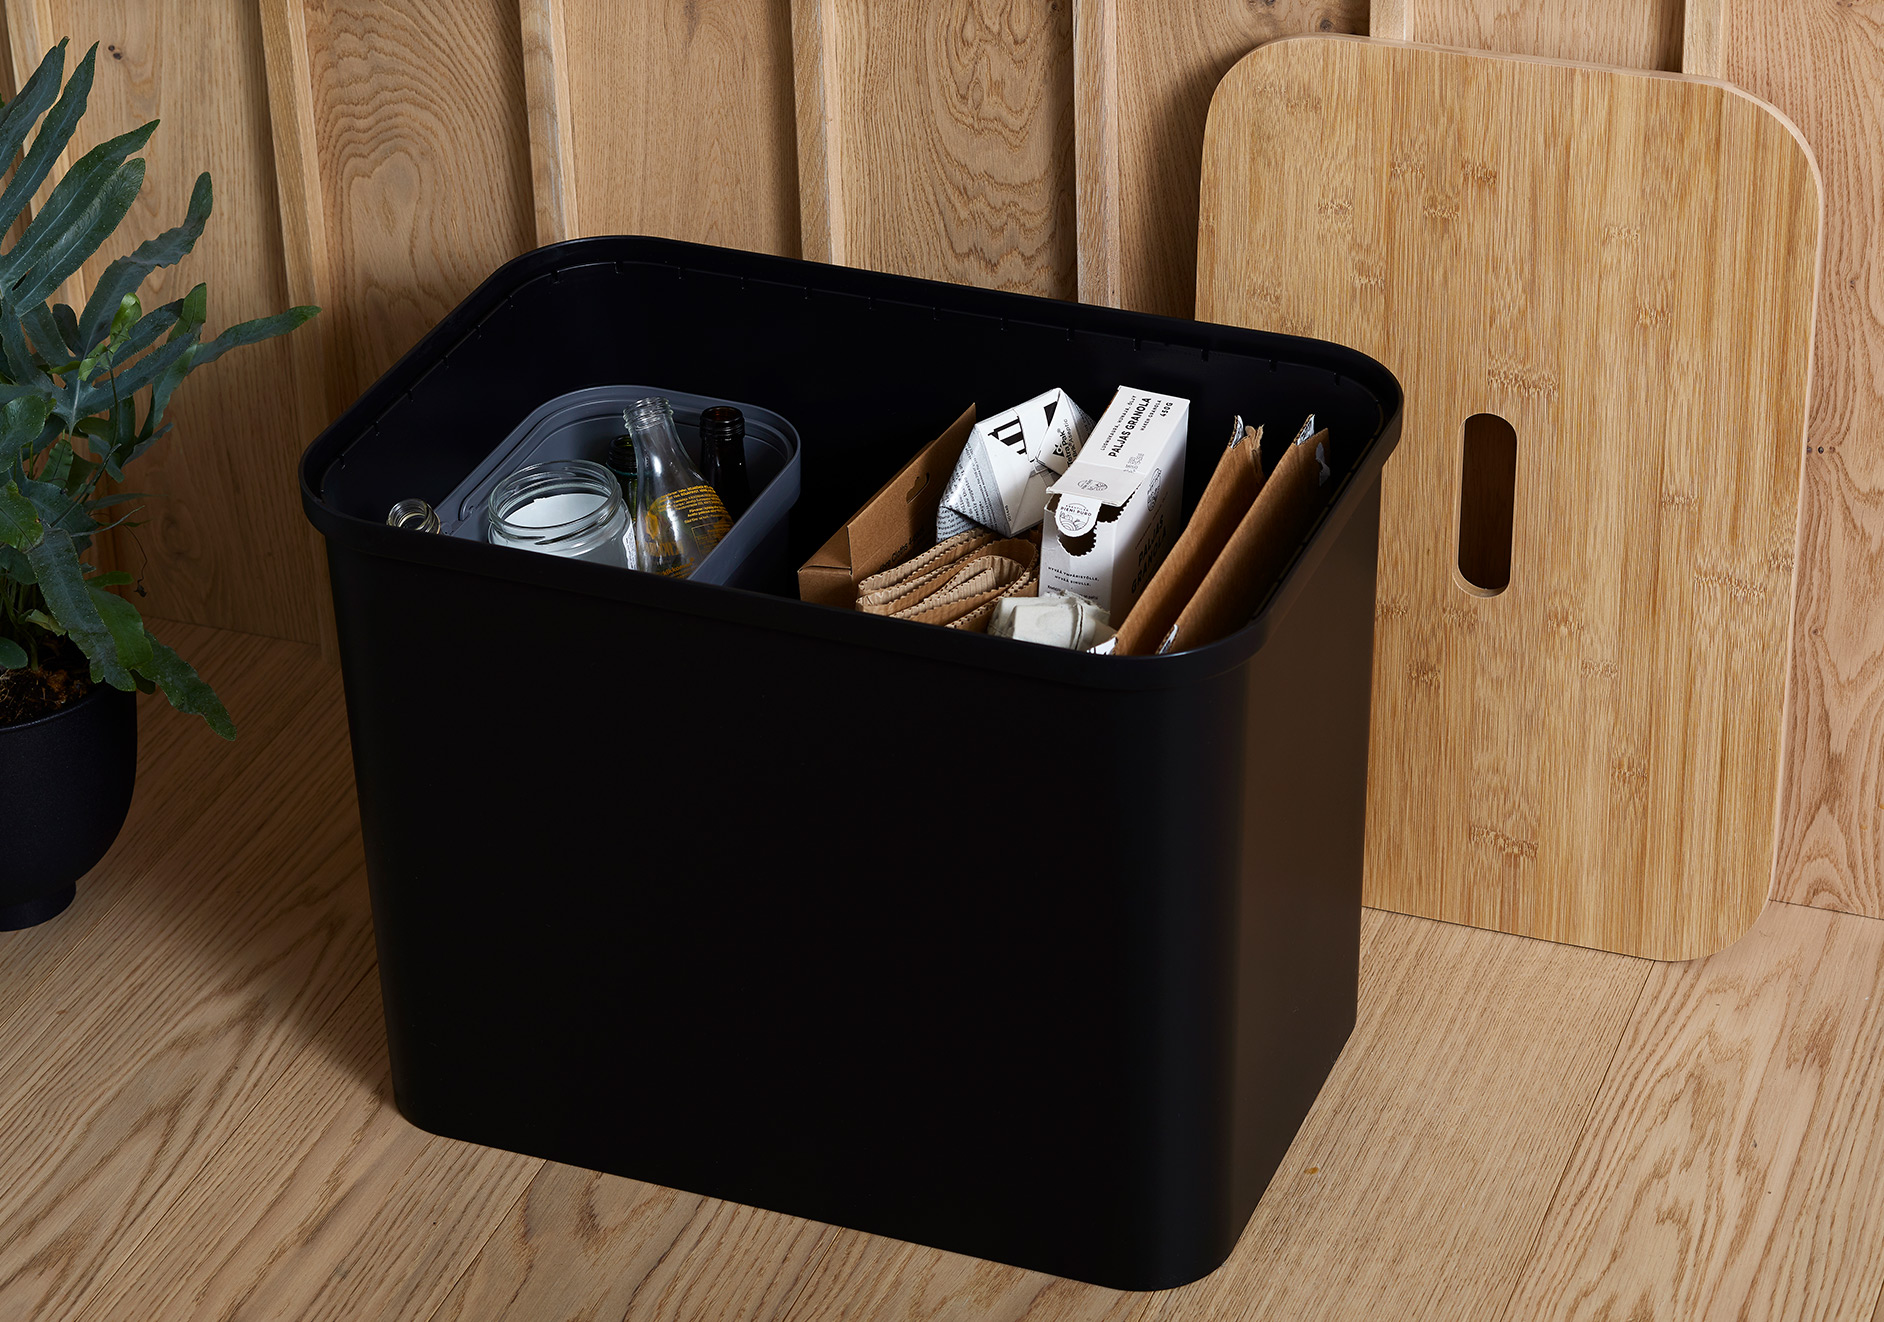 Orthex Smartstore Collect by Pentagon Design